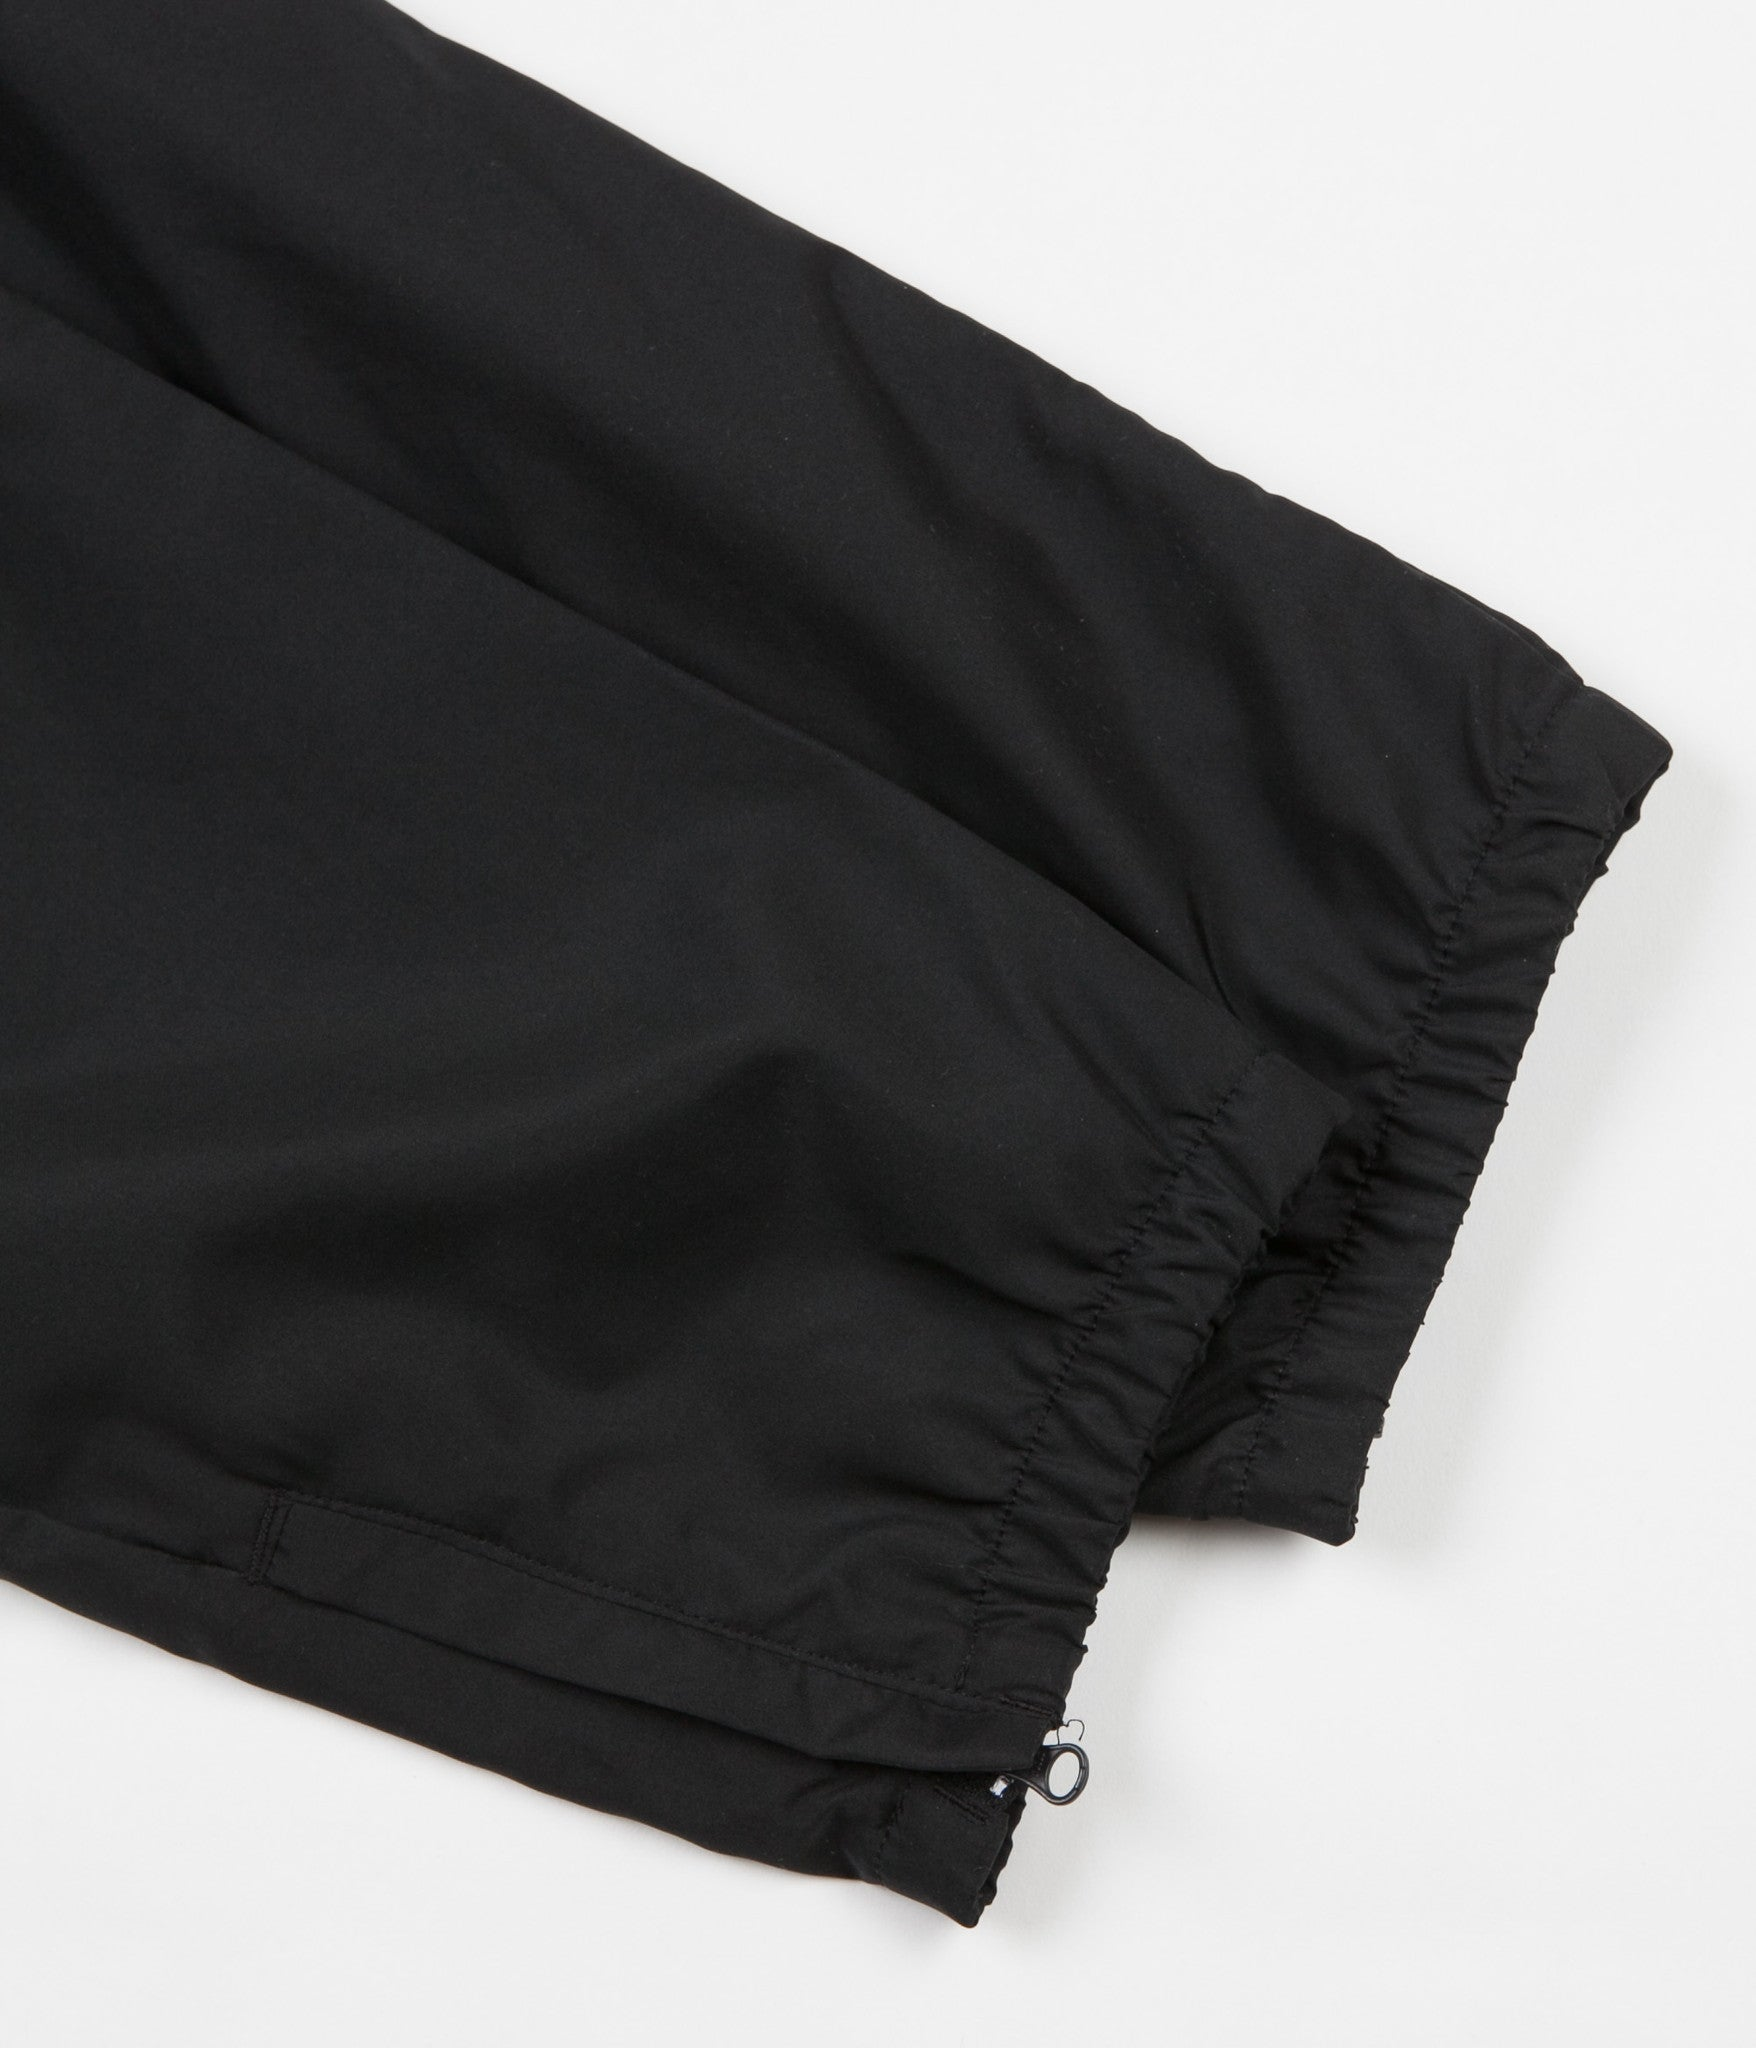 Adidas Premiere Sweatpants - Black / White